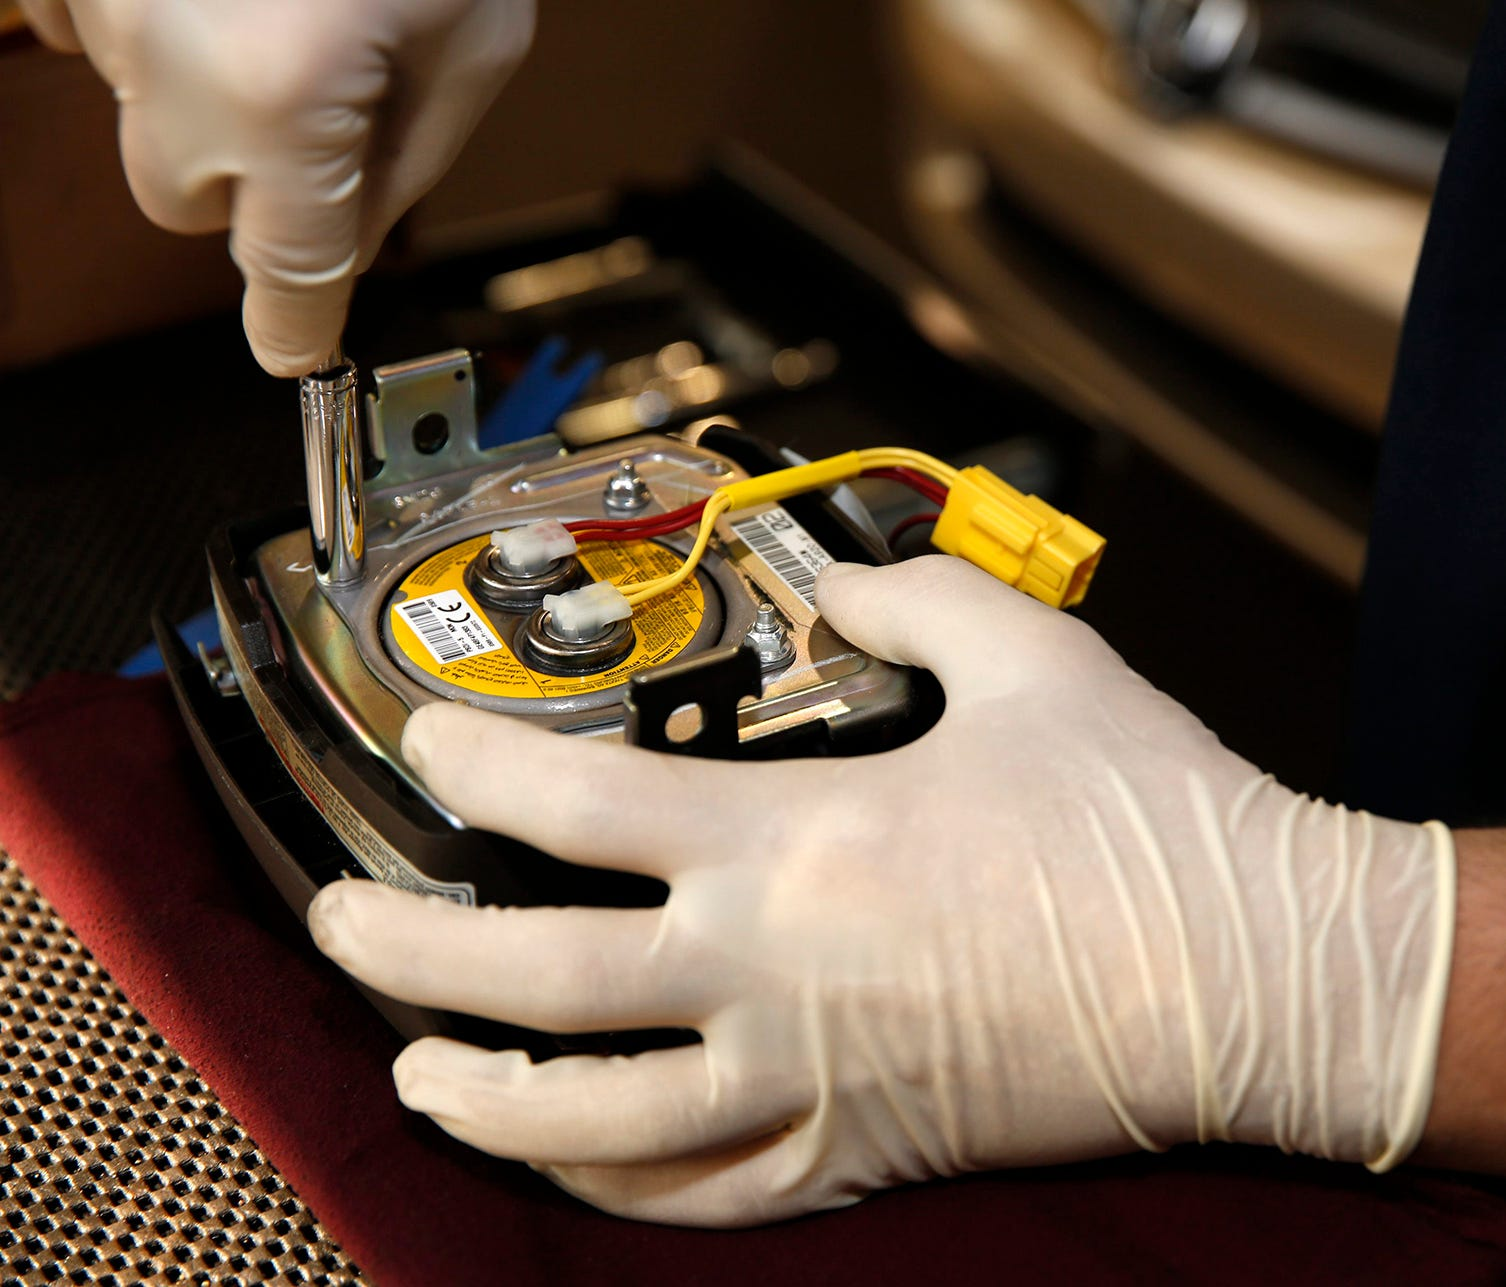 A new air bag inflator is installed on the Takata service recall of a 2005 Honda Accord LX at Suburban Honda in Farmington Hills, Mich., in this May 2015 file photo.